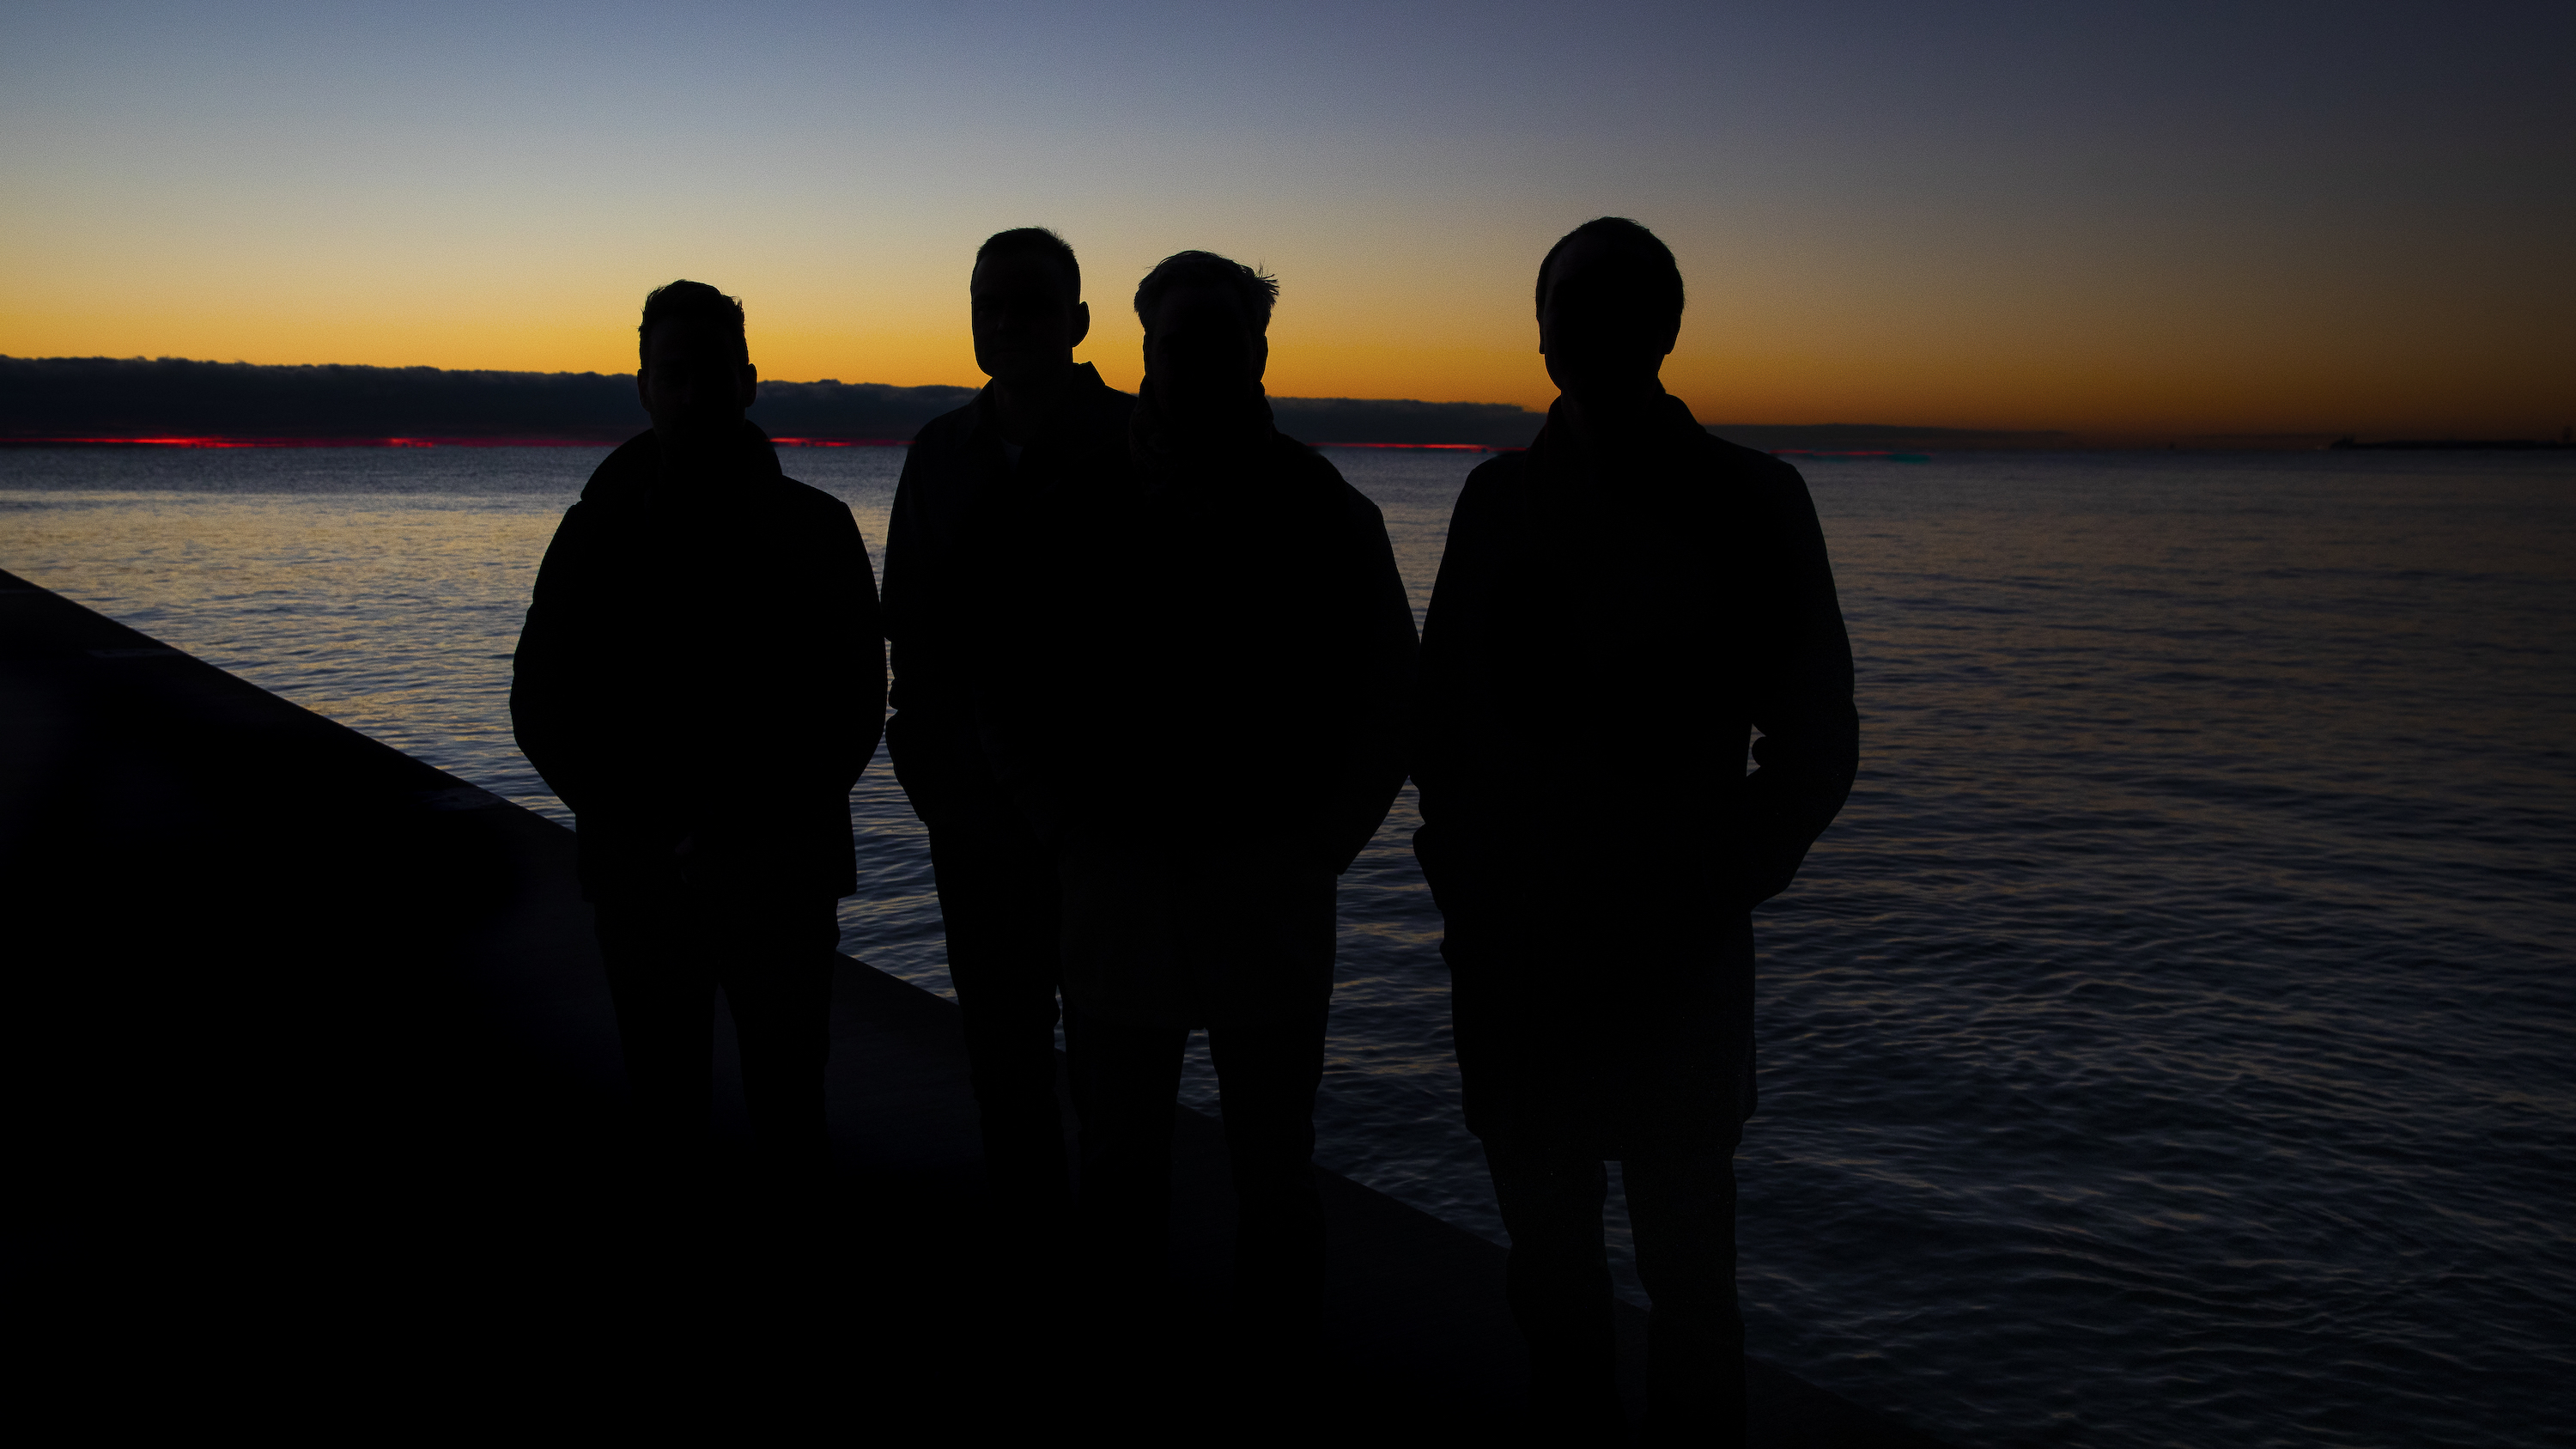 American Football Announces LP3 With Haunting 'Silhouettes'